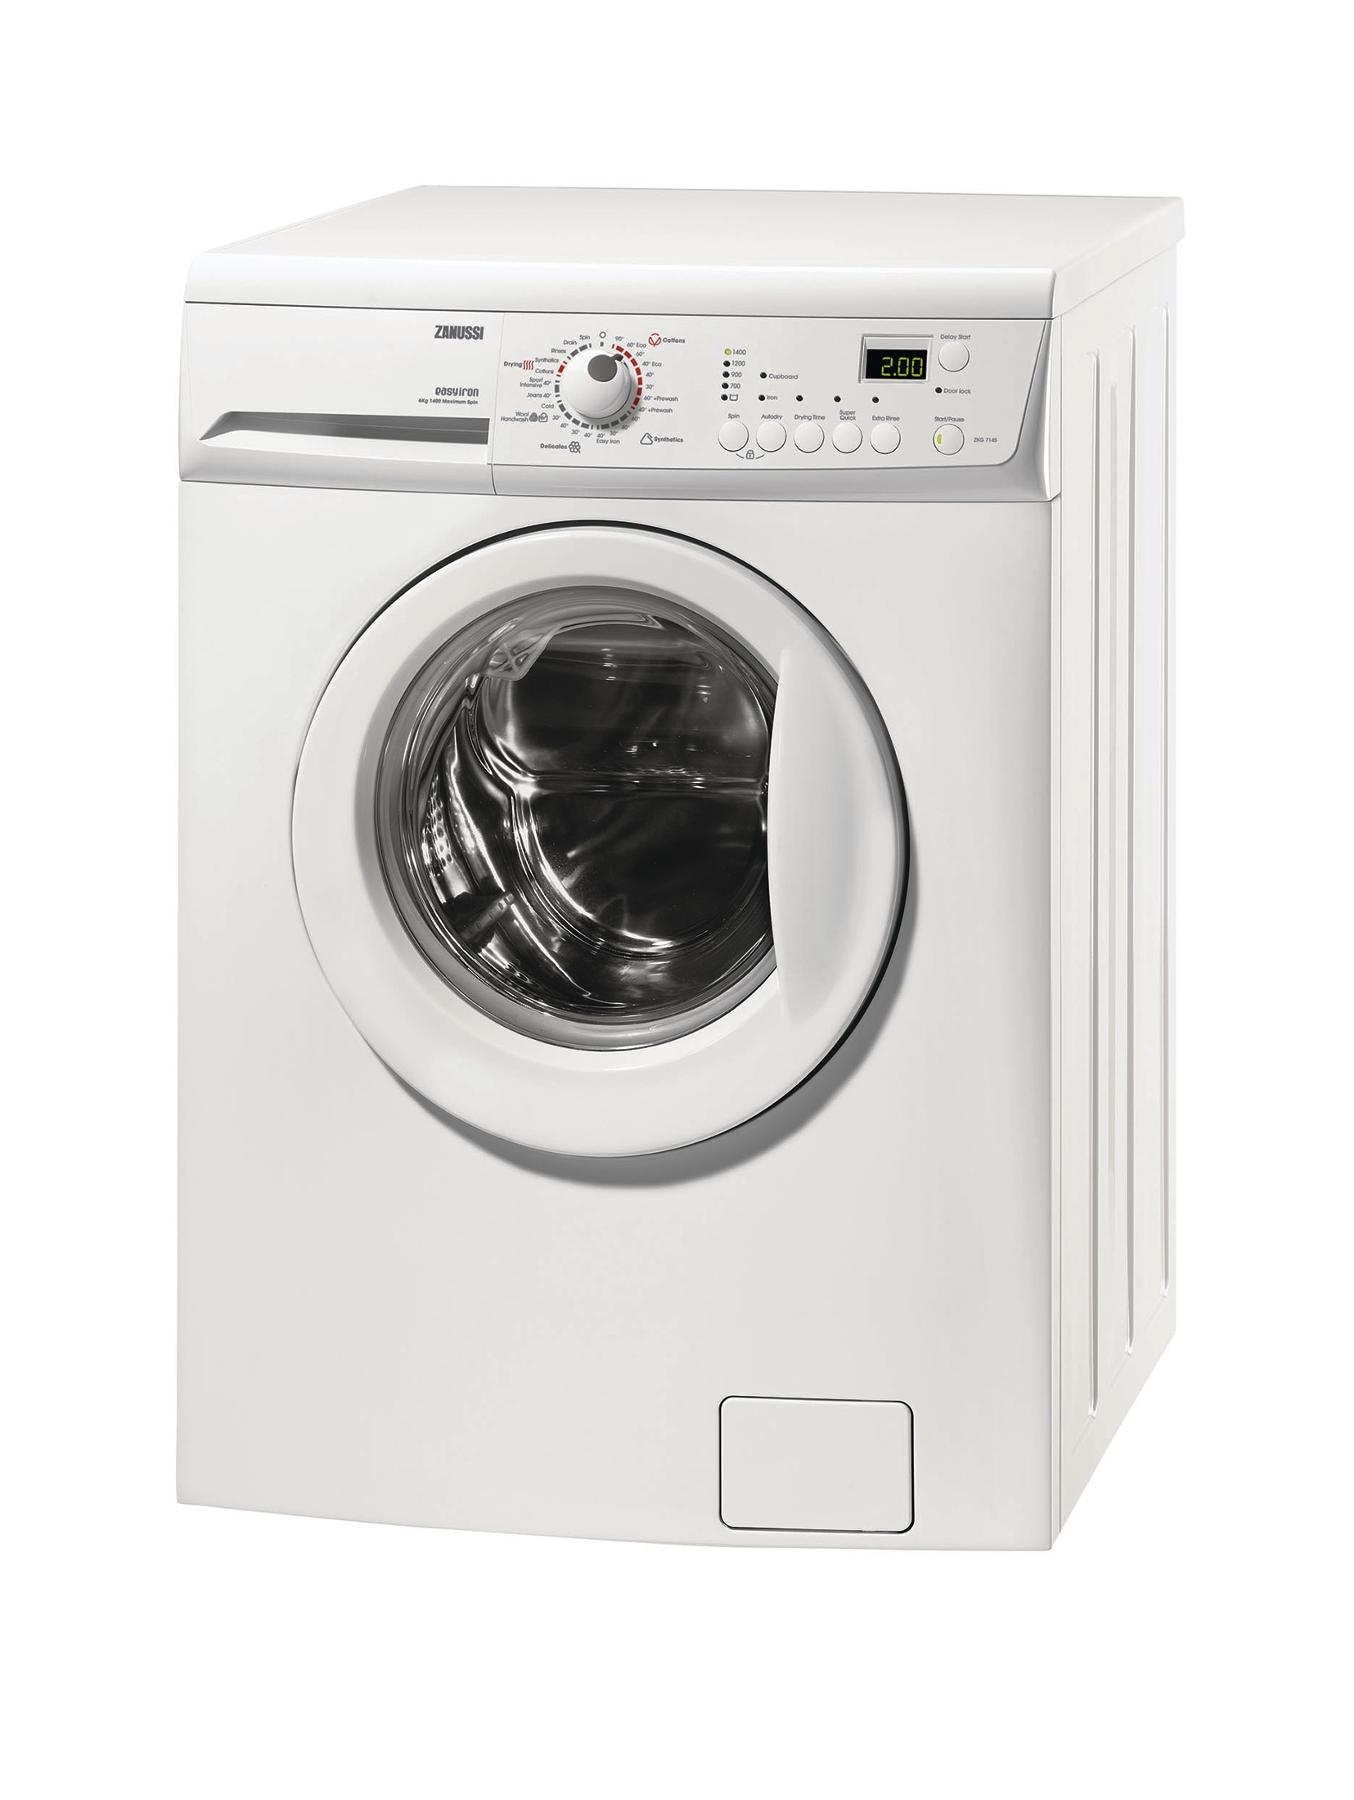 ZKG7145 6kg Wash, 4kg Load, 1400 Spin Washer Dryer - White